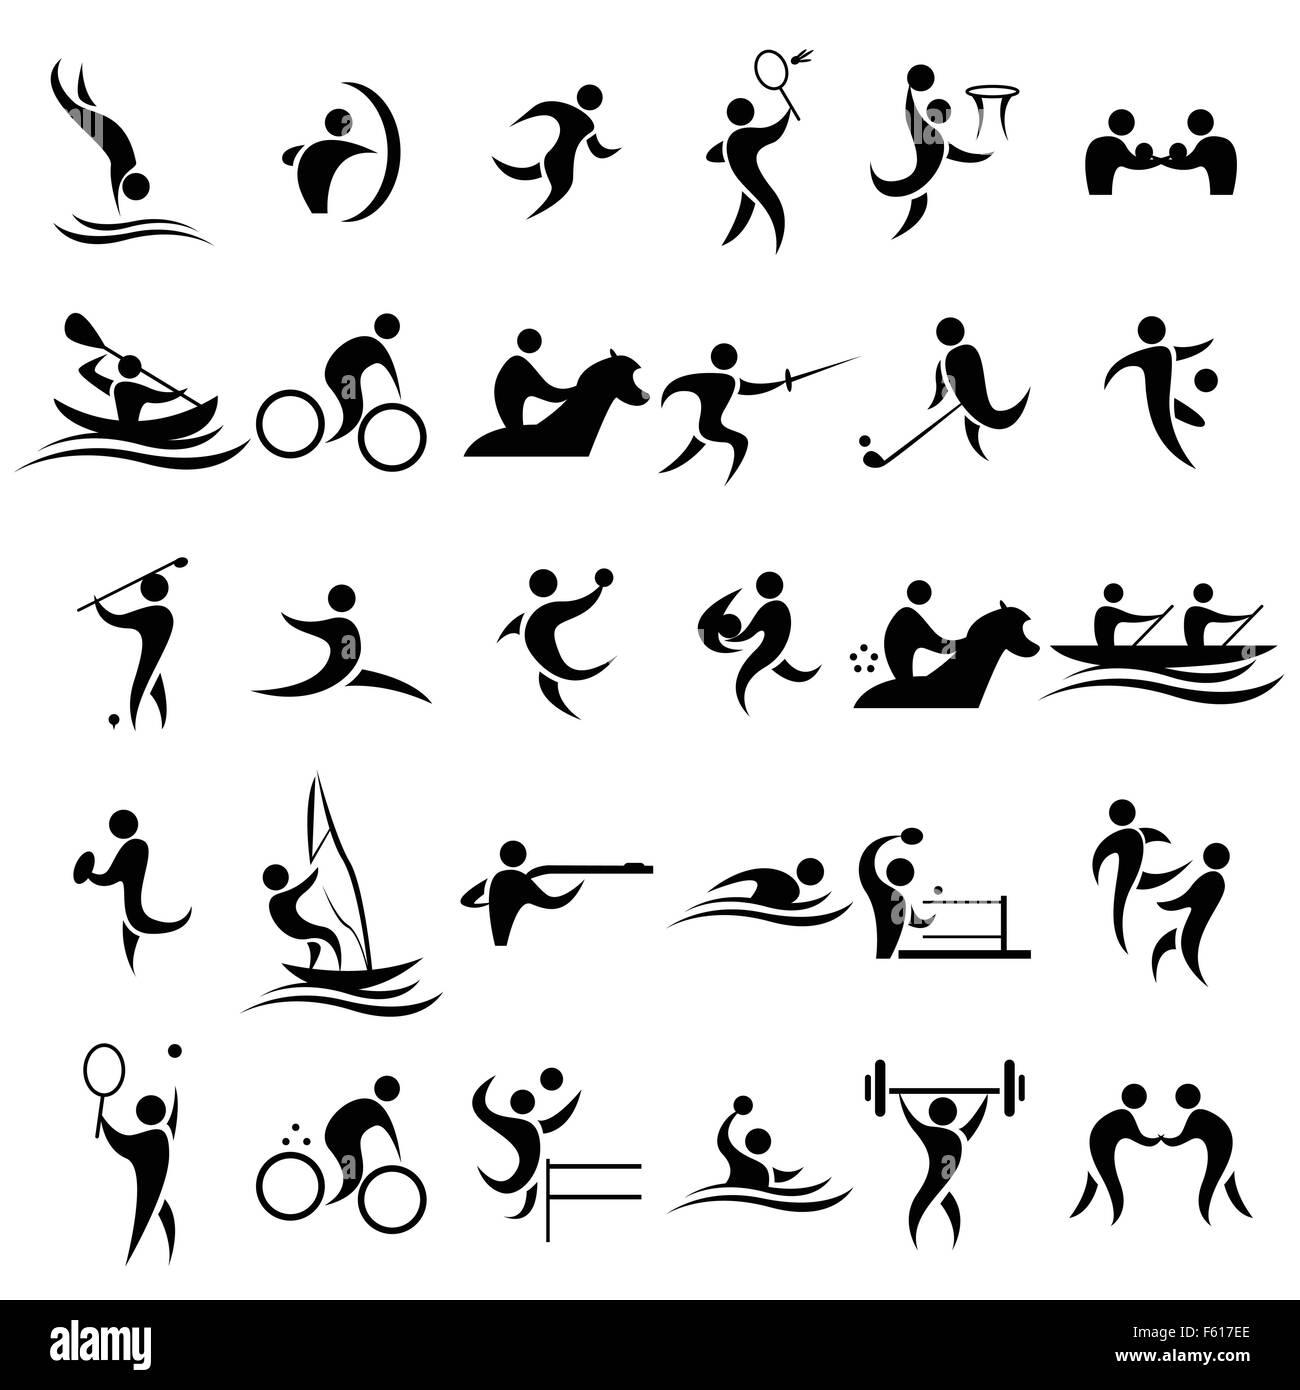 A vector illustration of sport icons sets - Stock Image